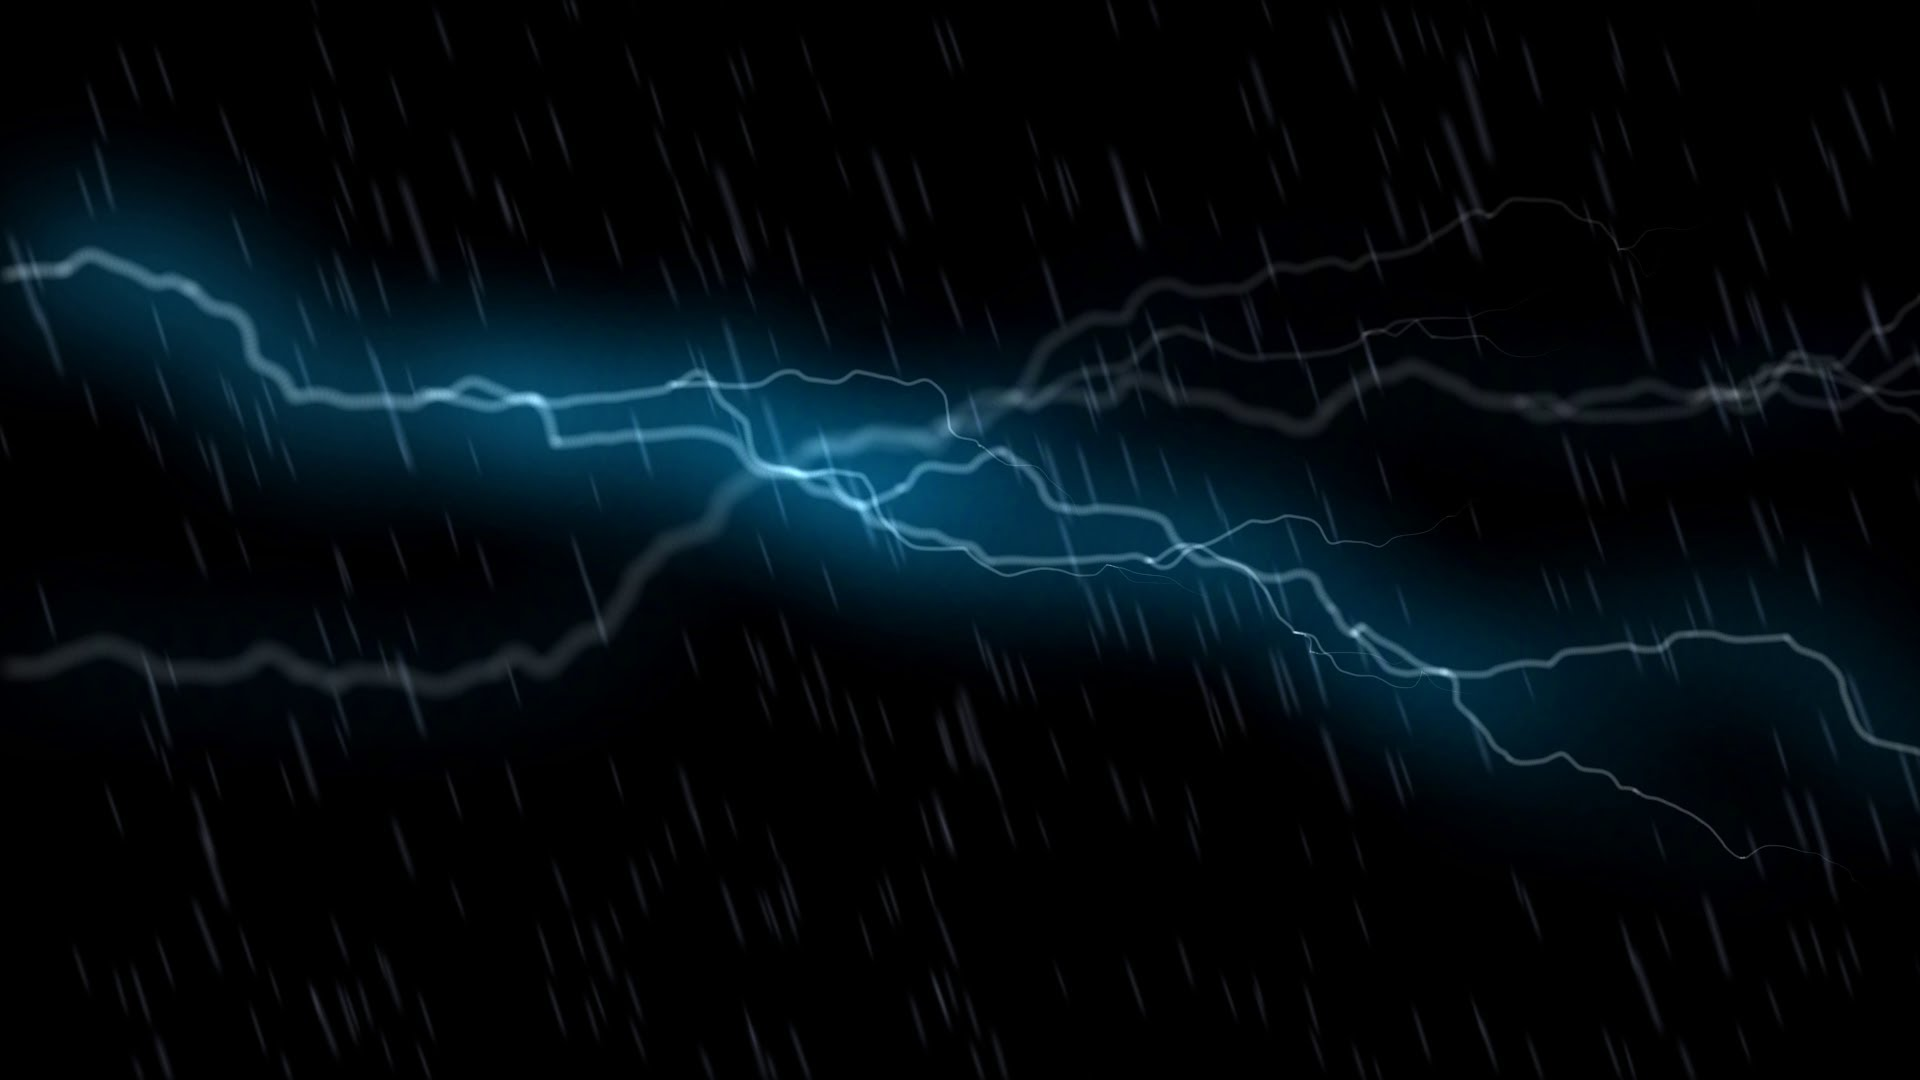 Animated Thunderstorm Wallpapers